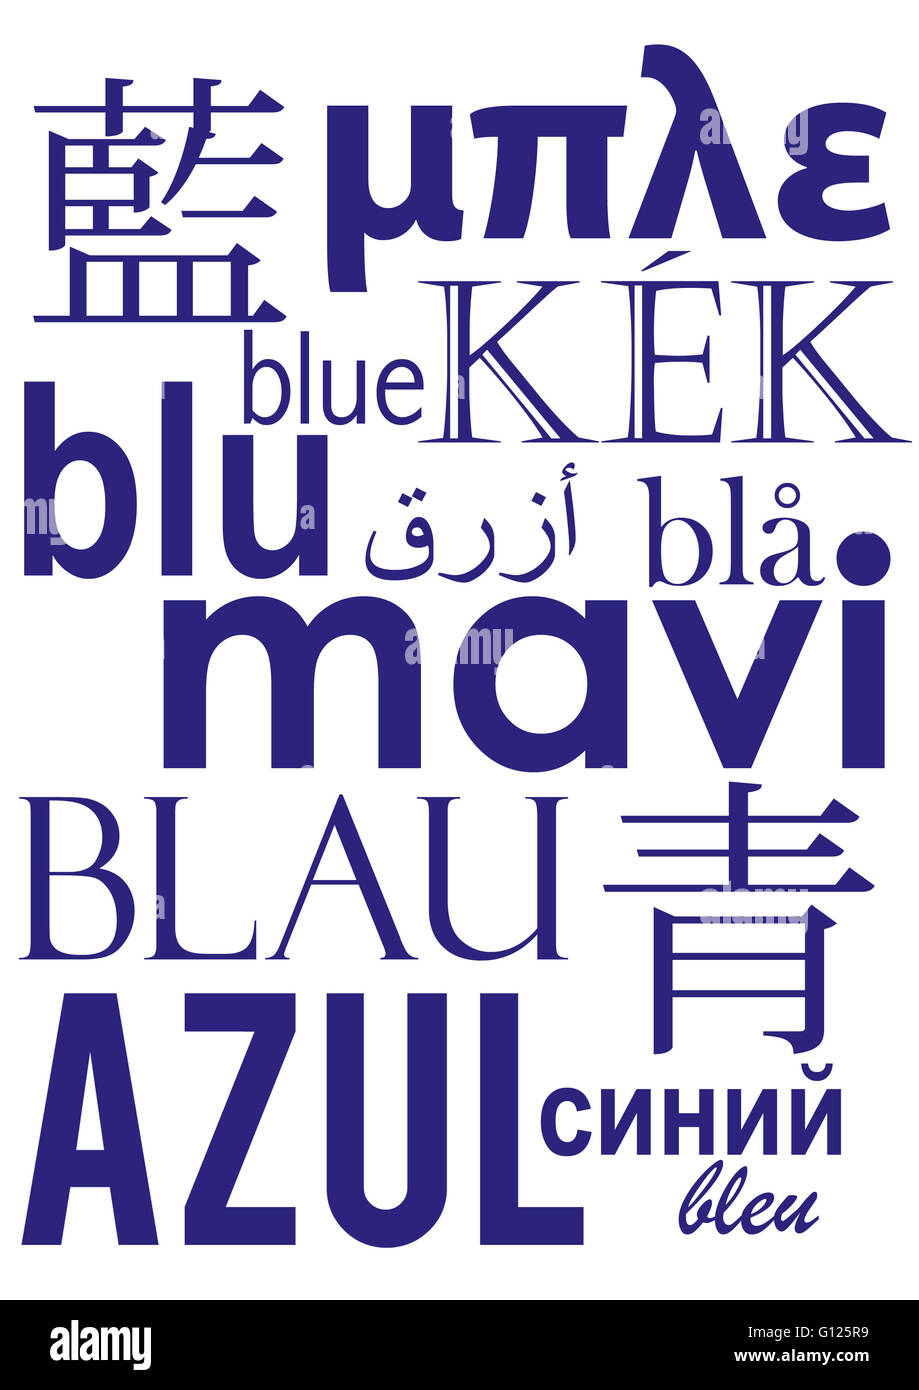 Blue written in different languages - Stock Image